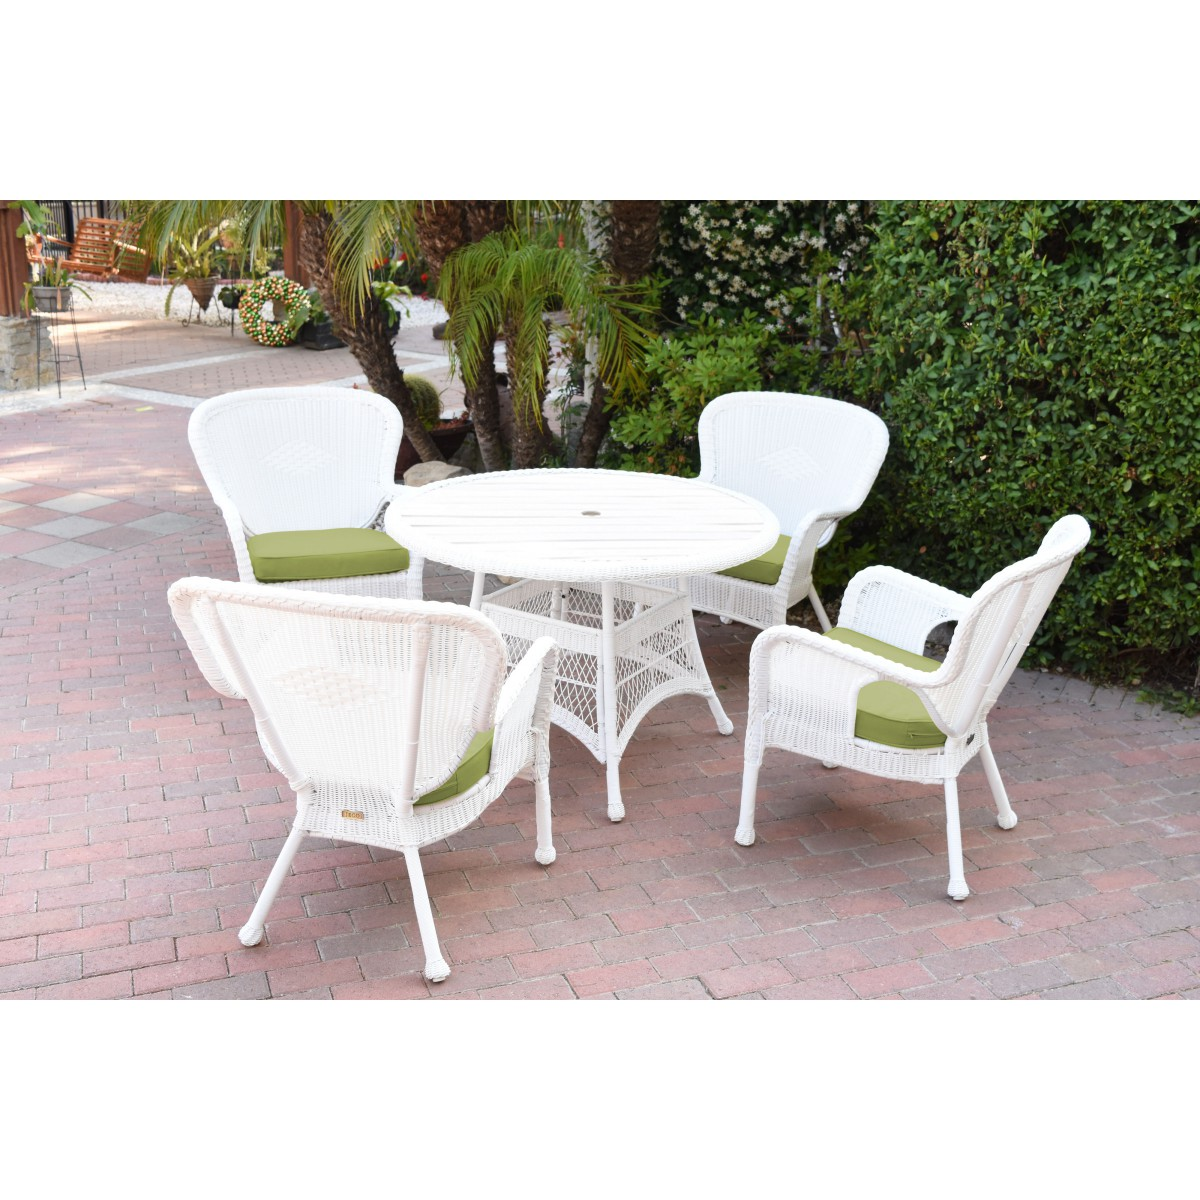 White Wicker Dining Chairs: 5pc Windsor White Wicker Dining Set With Faux Wood Top And